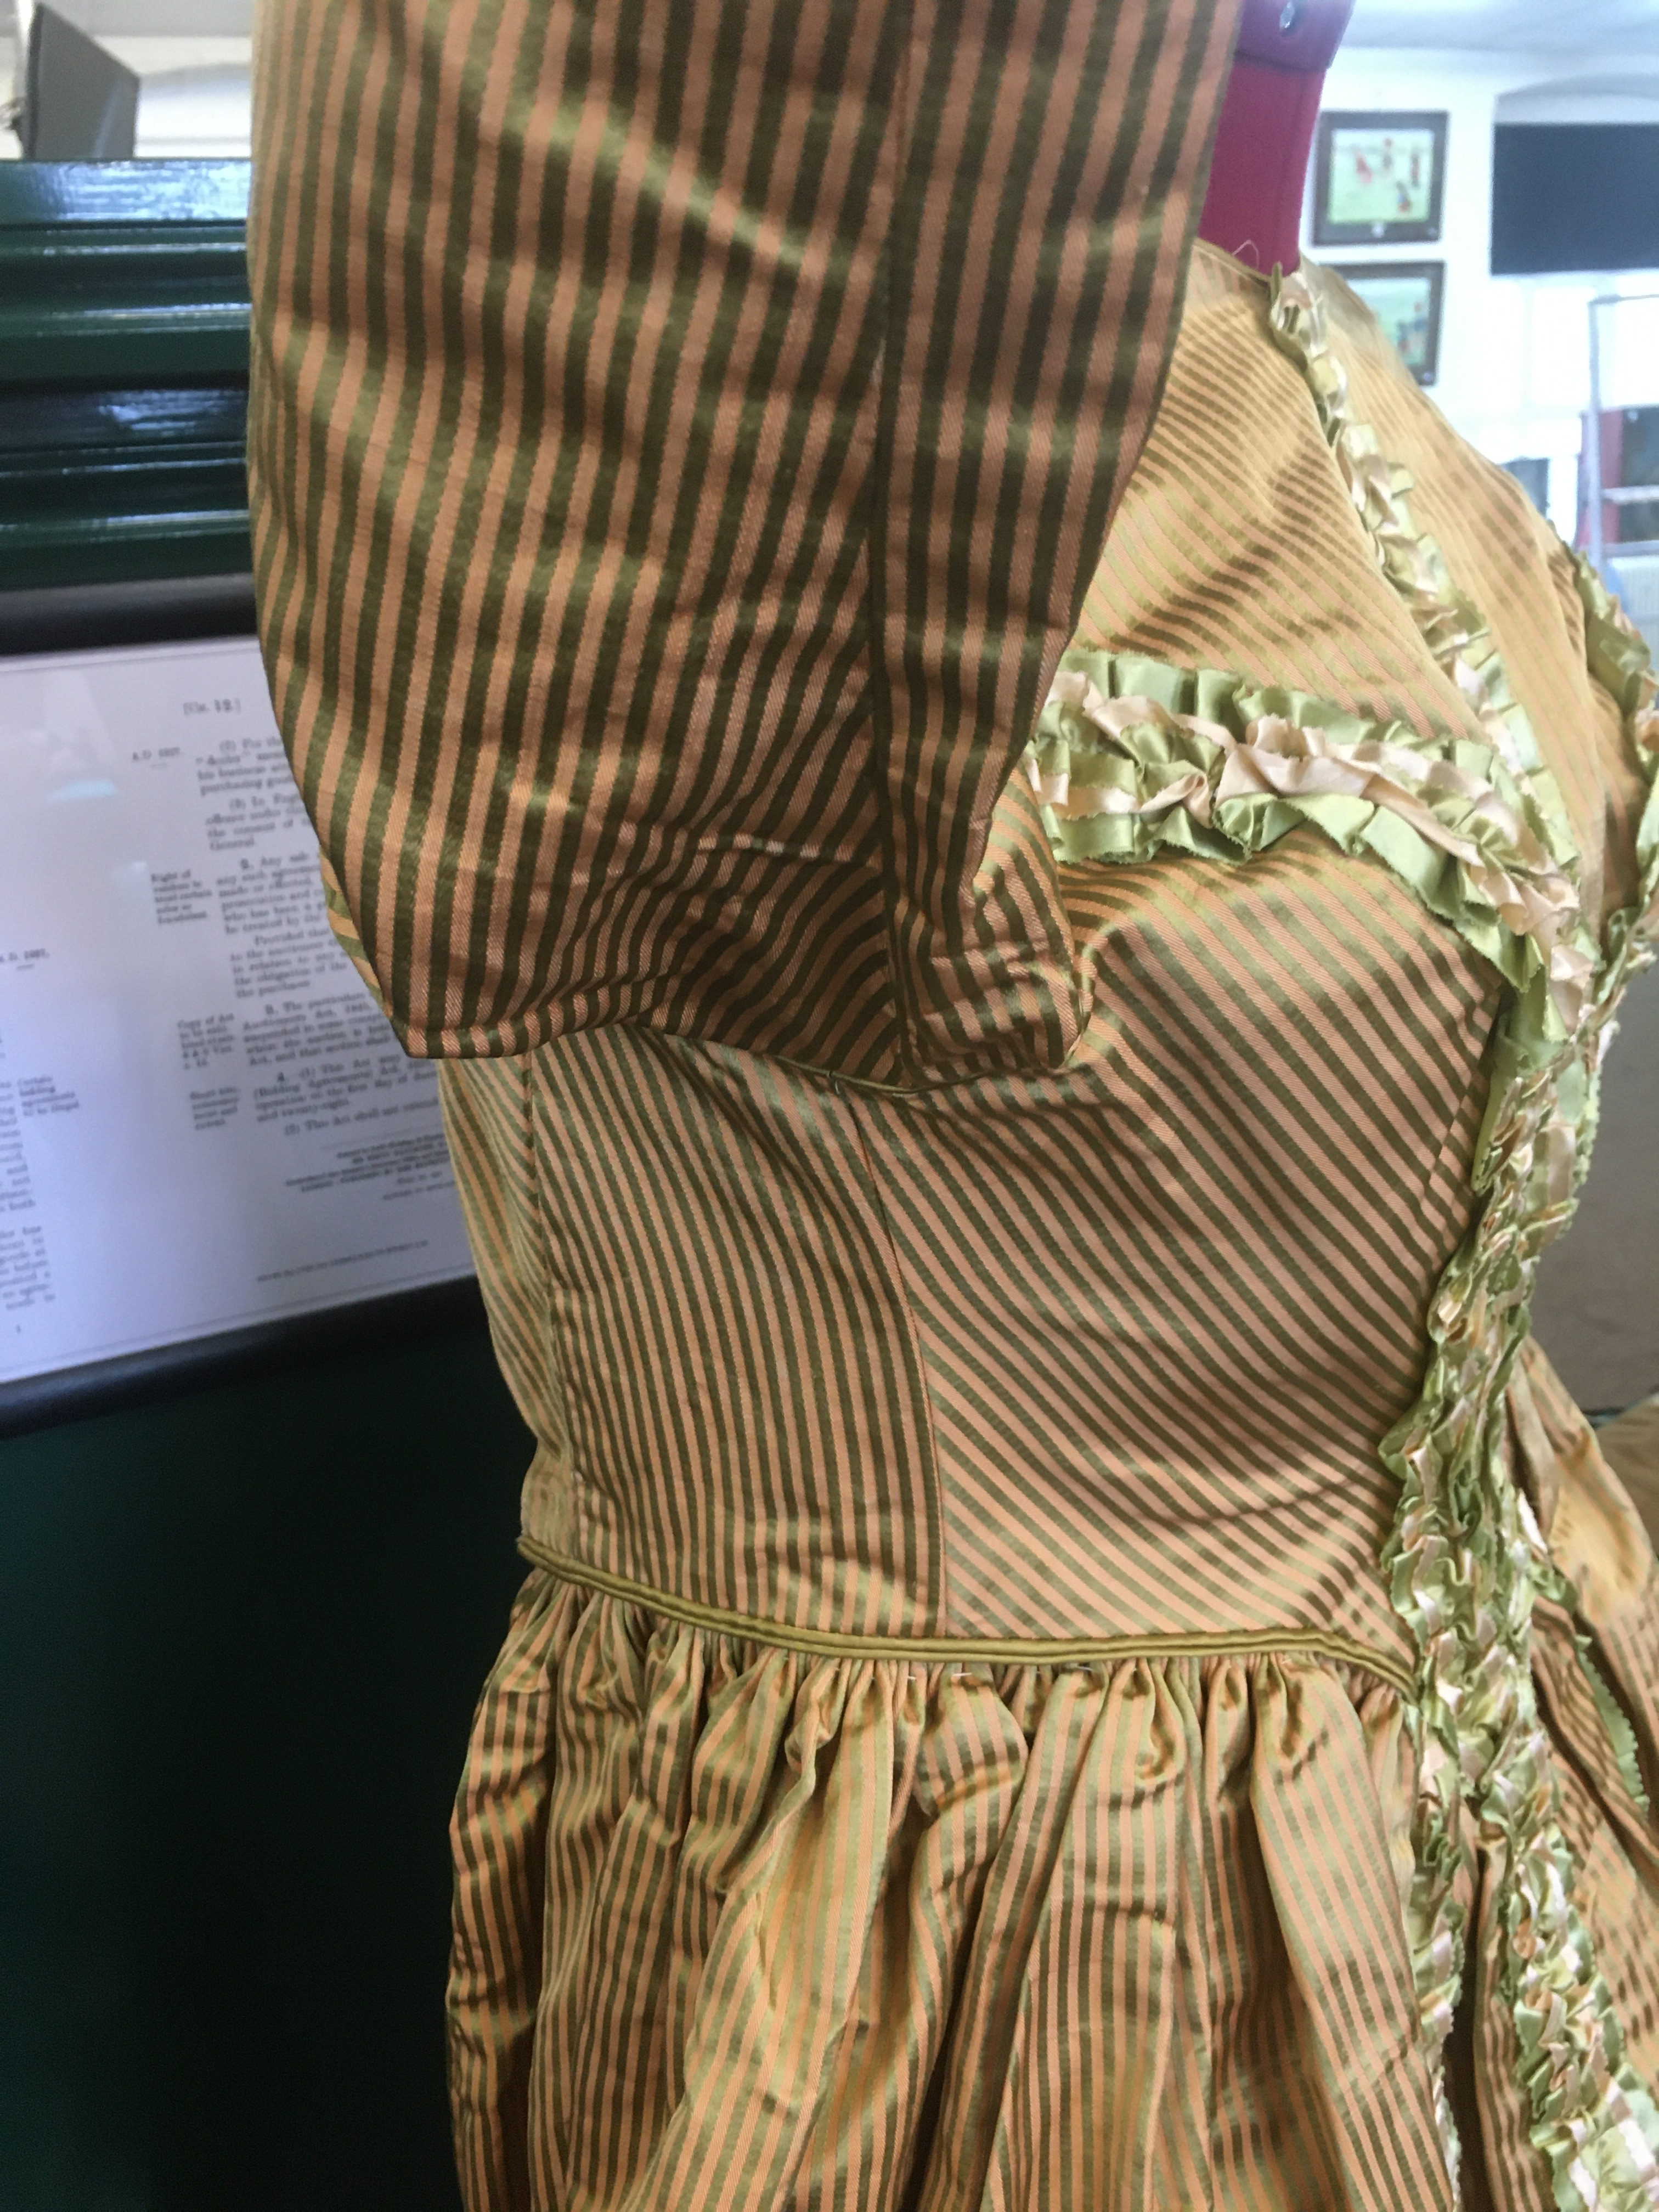 19THC SILK LADIES DRESS a mid 19thc apricot and olive green striped silk dress, decorated with - Image 3 of 9